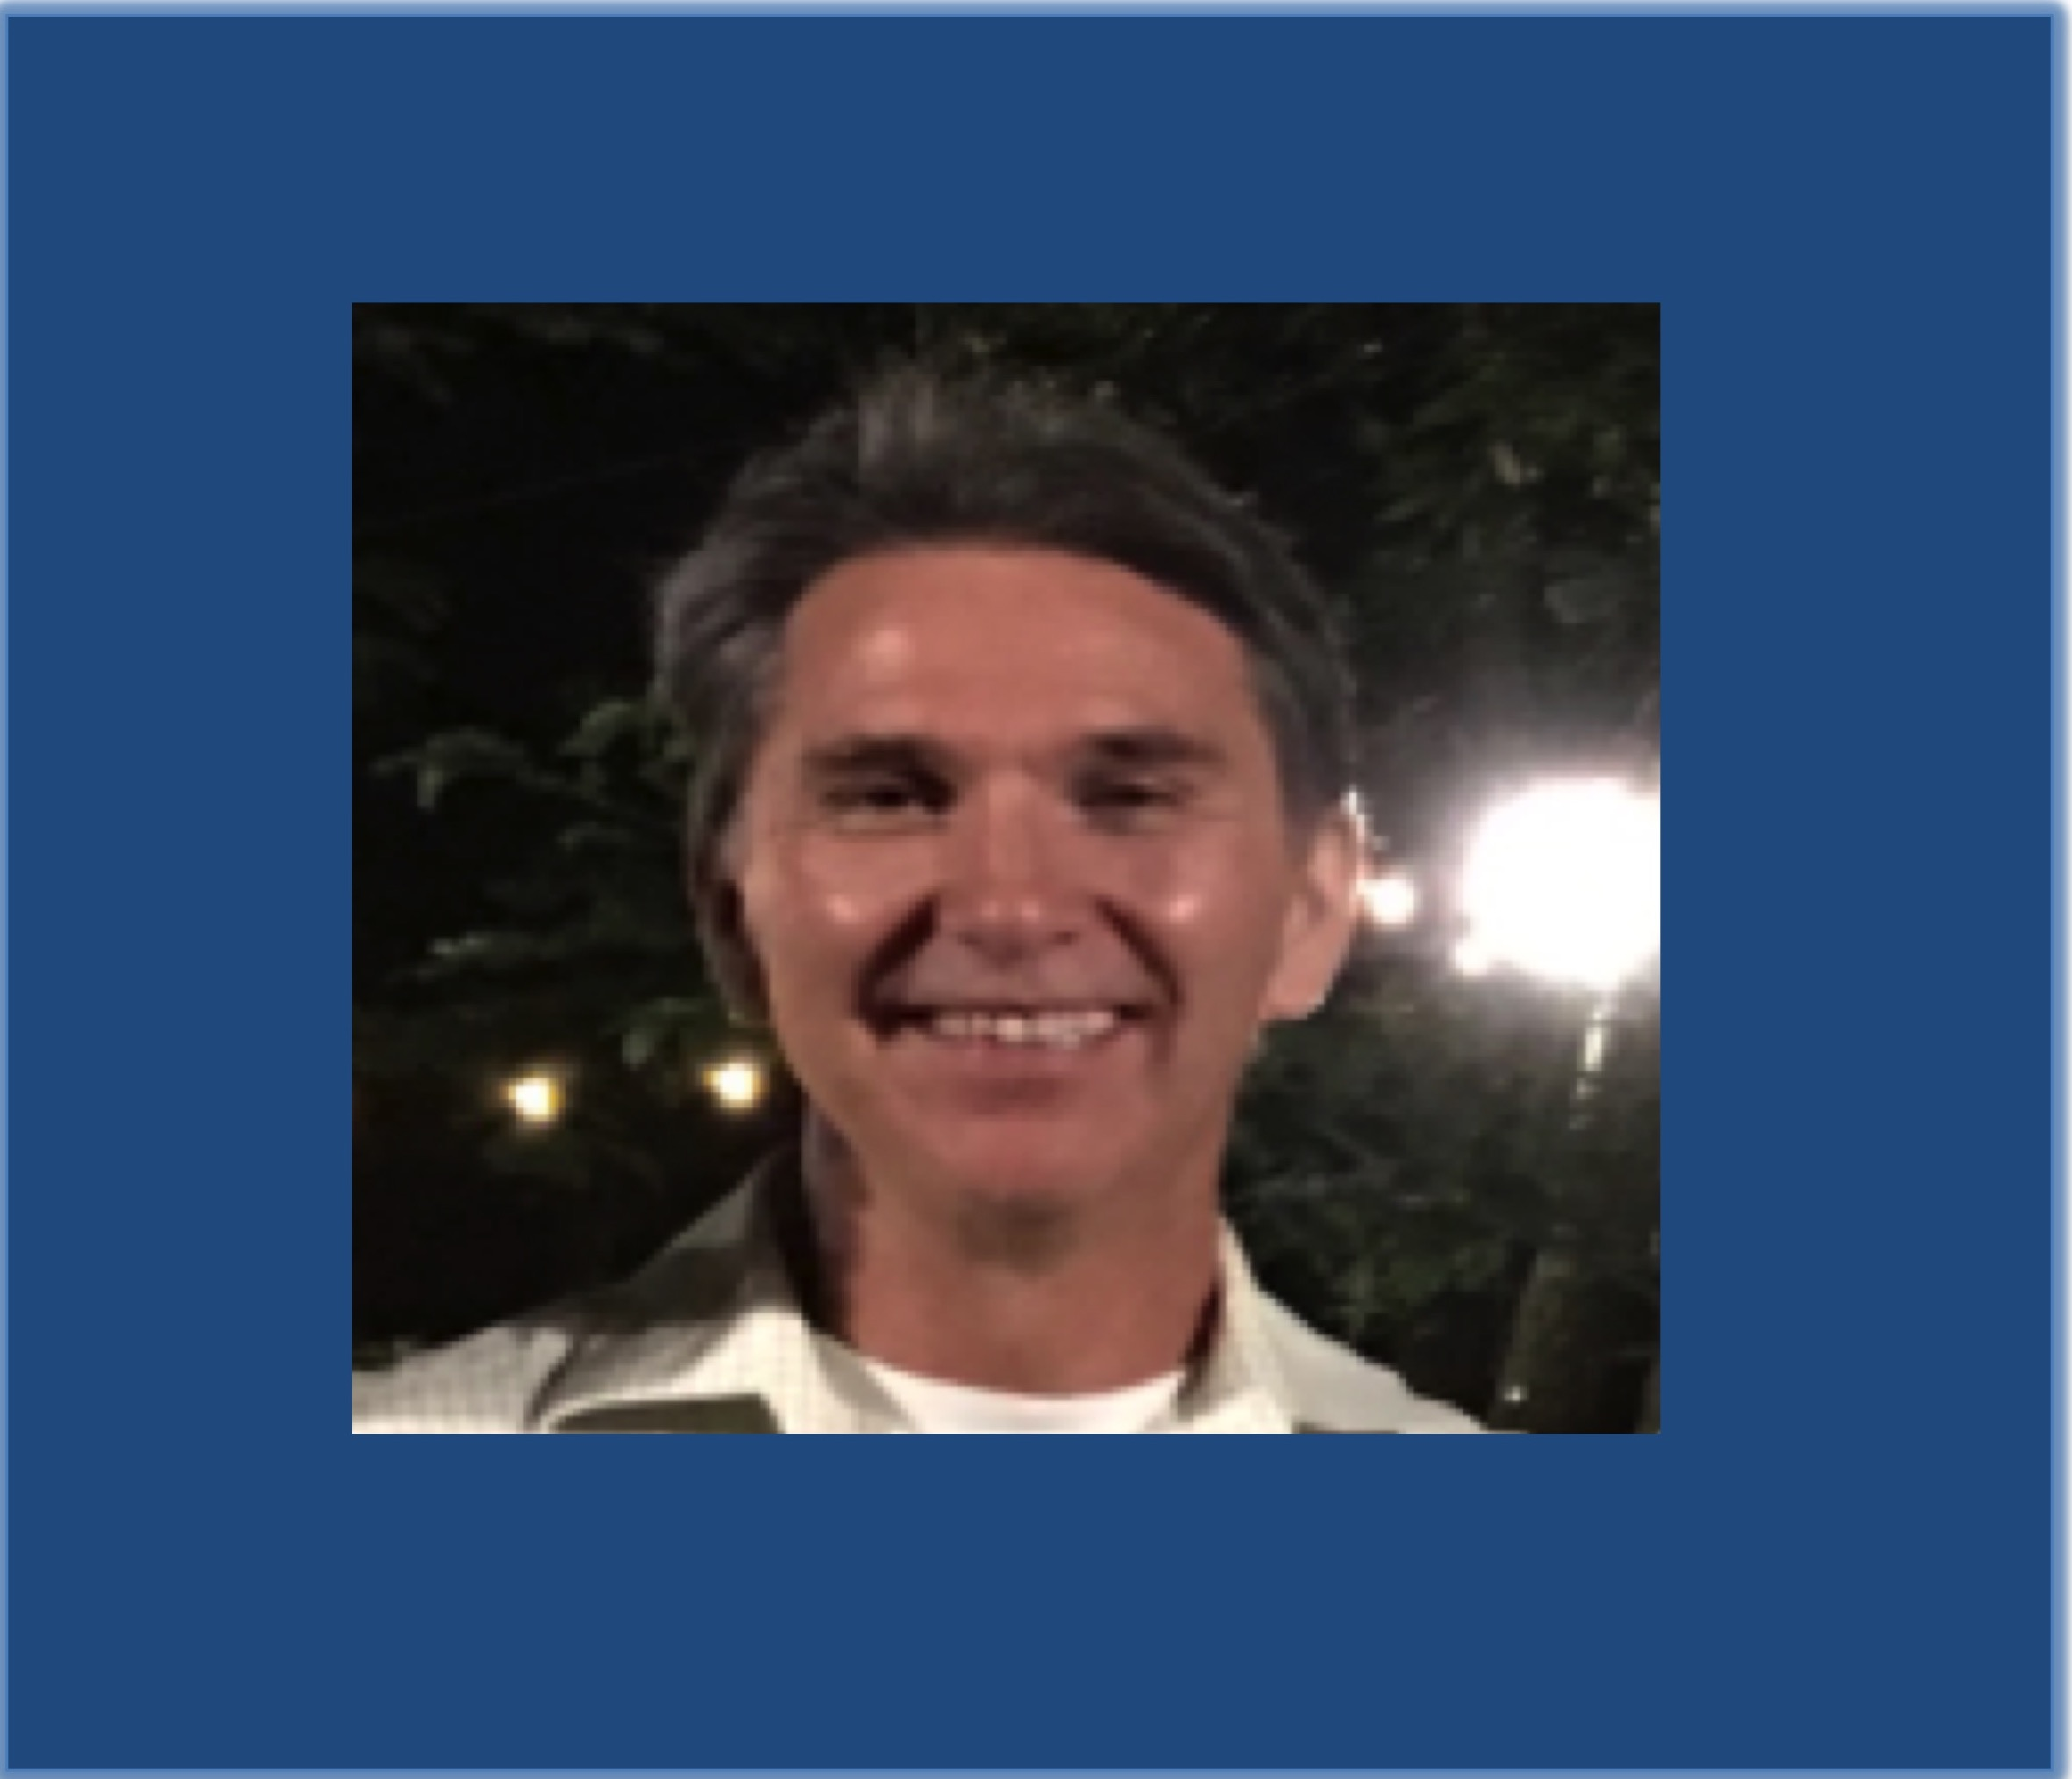 Randy hold emotional integrative hypnotherapist san marcos as a certified clinical hypnotherapist an emotional integrative hypnotherapist based in san marcos near austin texas i can help you make lasting changes xflitez Gallery